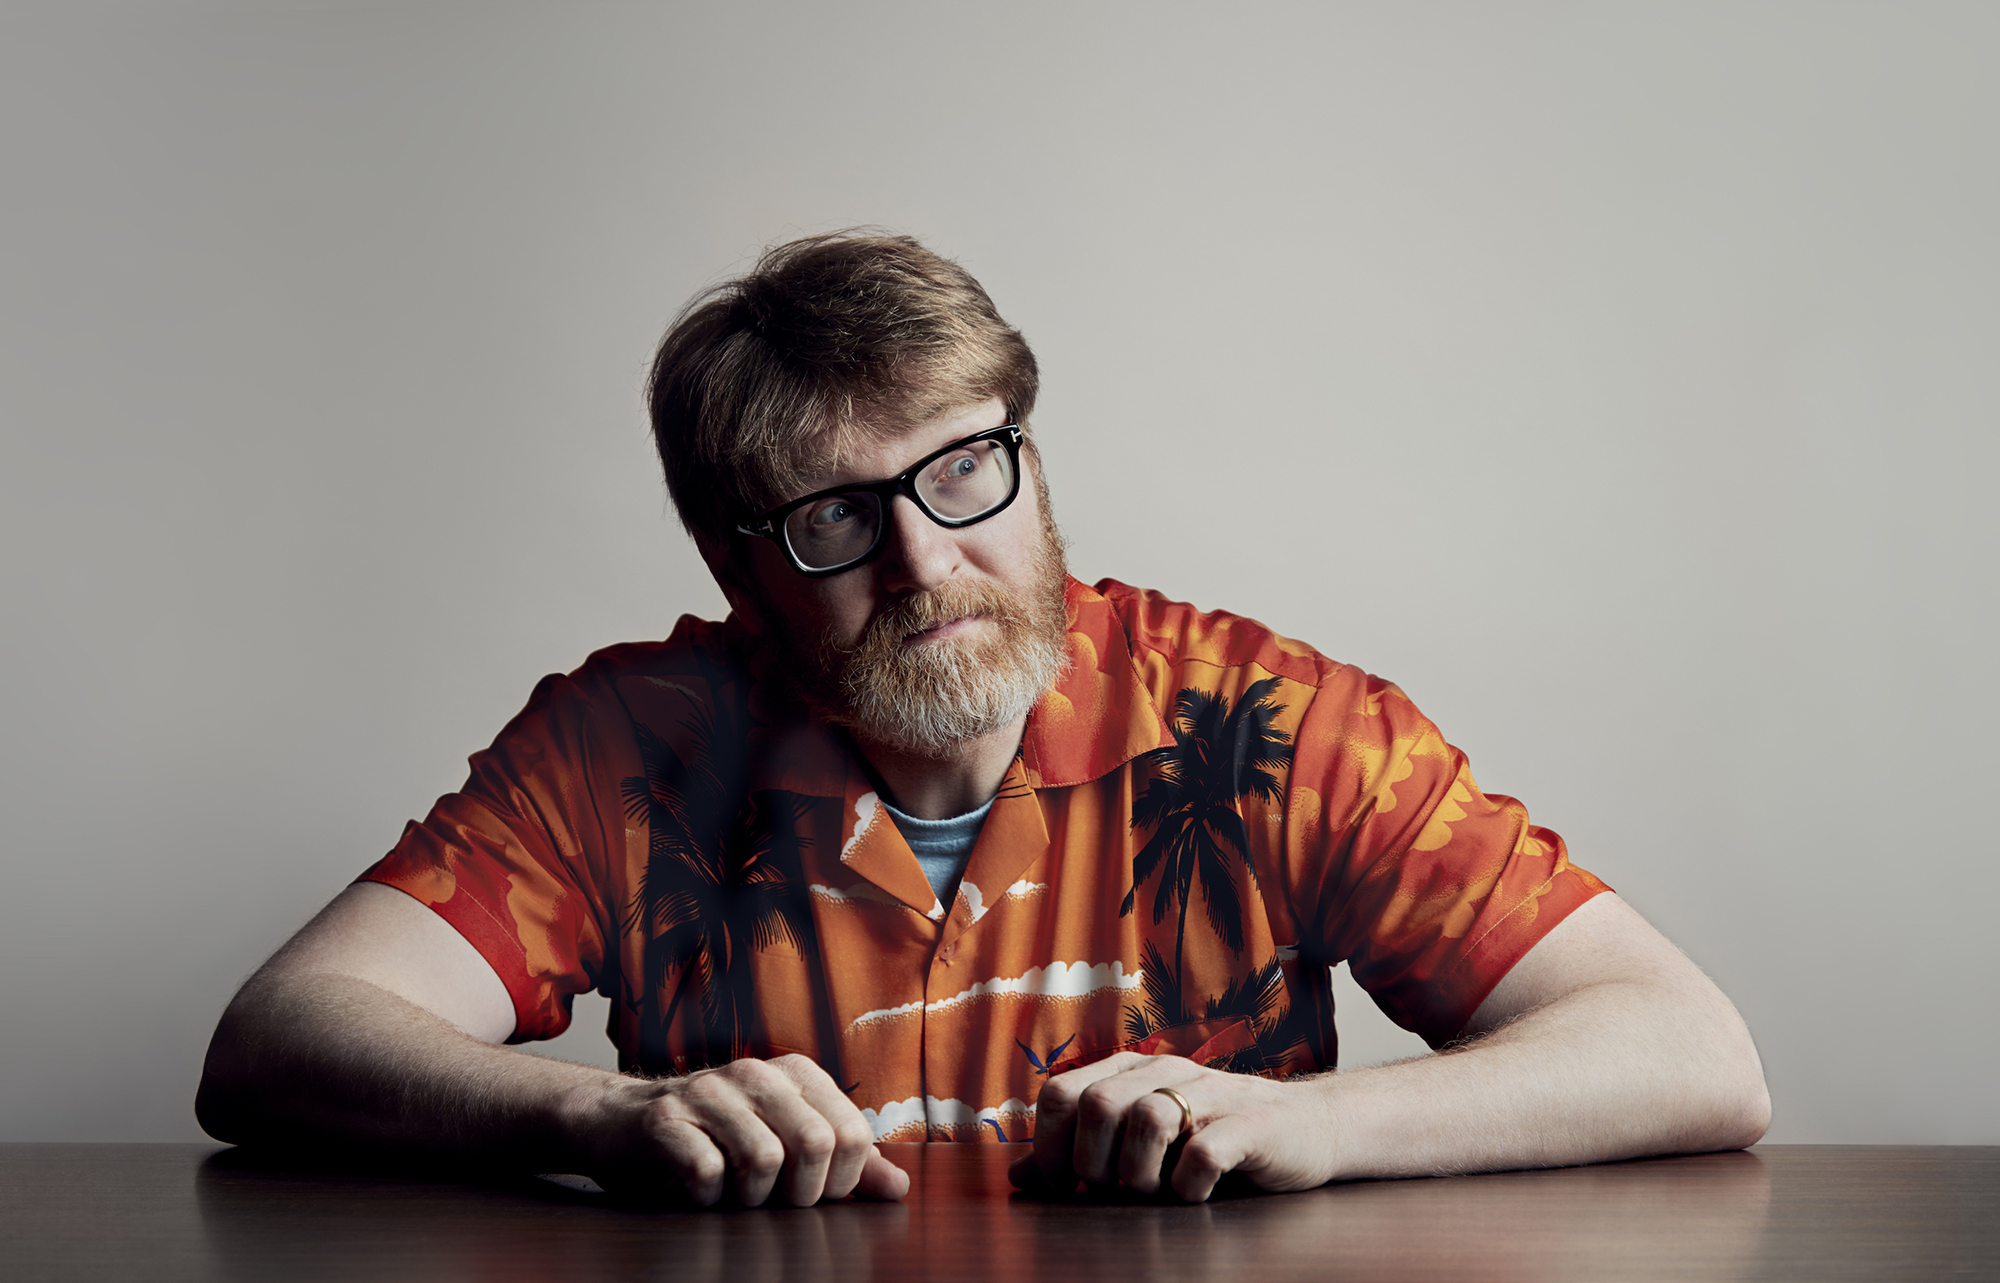 Chuck Klosterman portrait, Chuck Klosterman photo, Chuck Klosterman picture, seattle editorial portrait, seattle editorial photographer, seattle editorial portrait photographer, seattle commercial photographer, seattle portrait photographer, portrait photographer pacific northwest, editorial photographer pacific northwest, quinn russell brown, quinn brown seattle, quinn russell brown seattle, quinn russell brown seattle photography